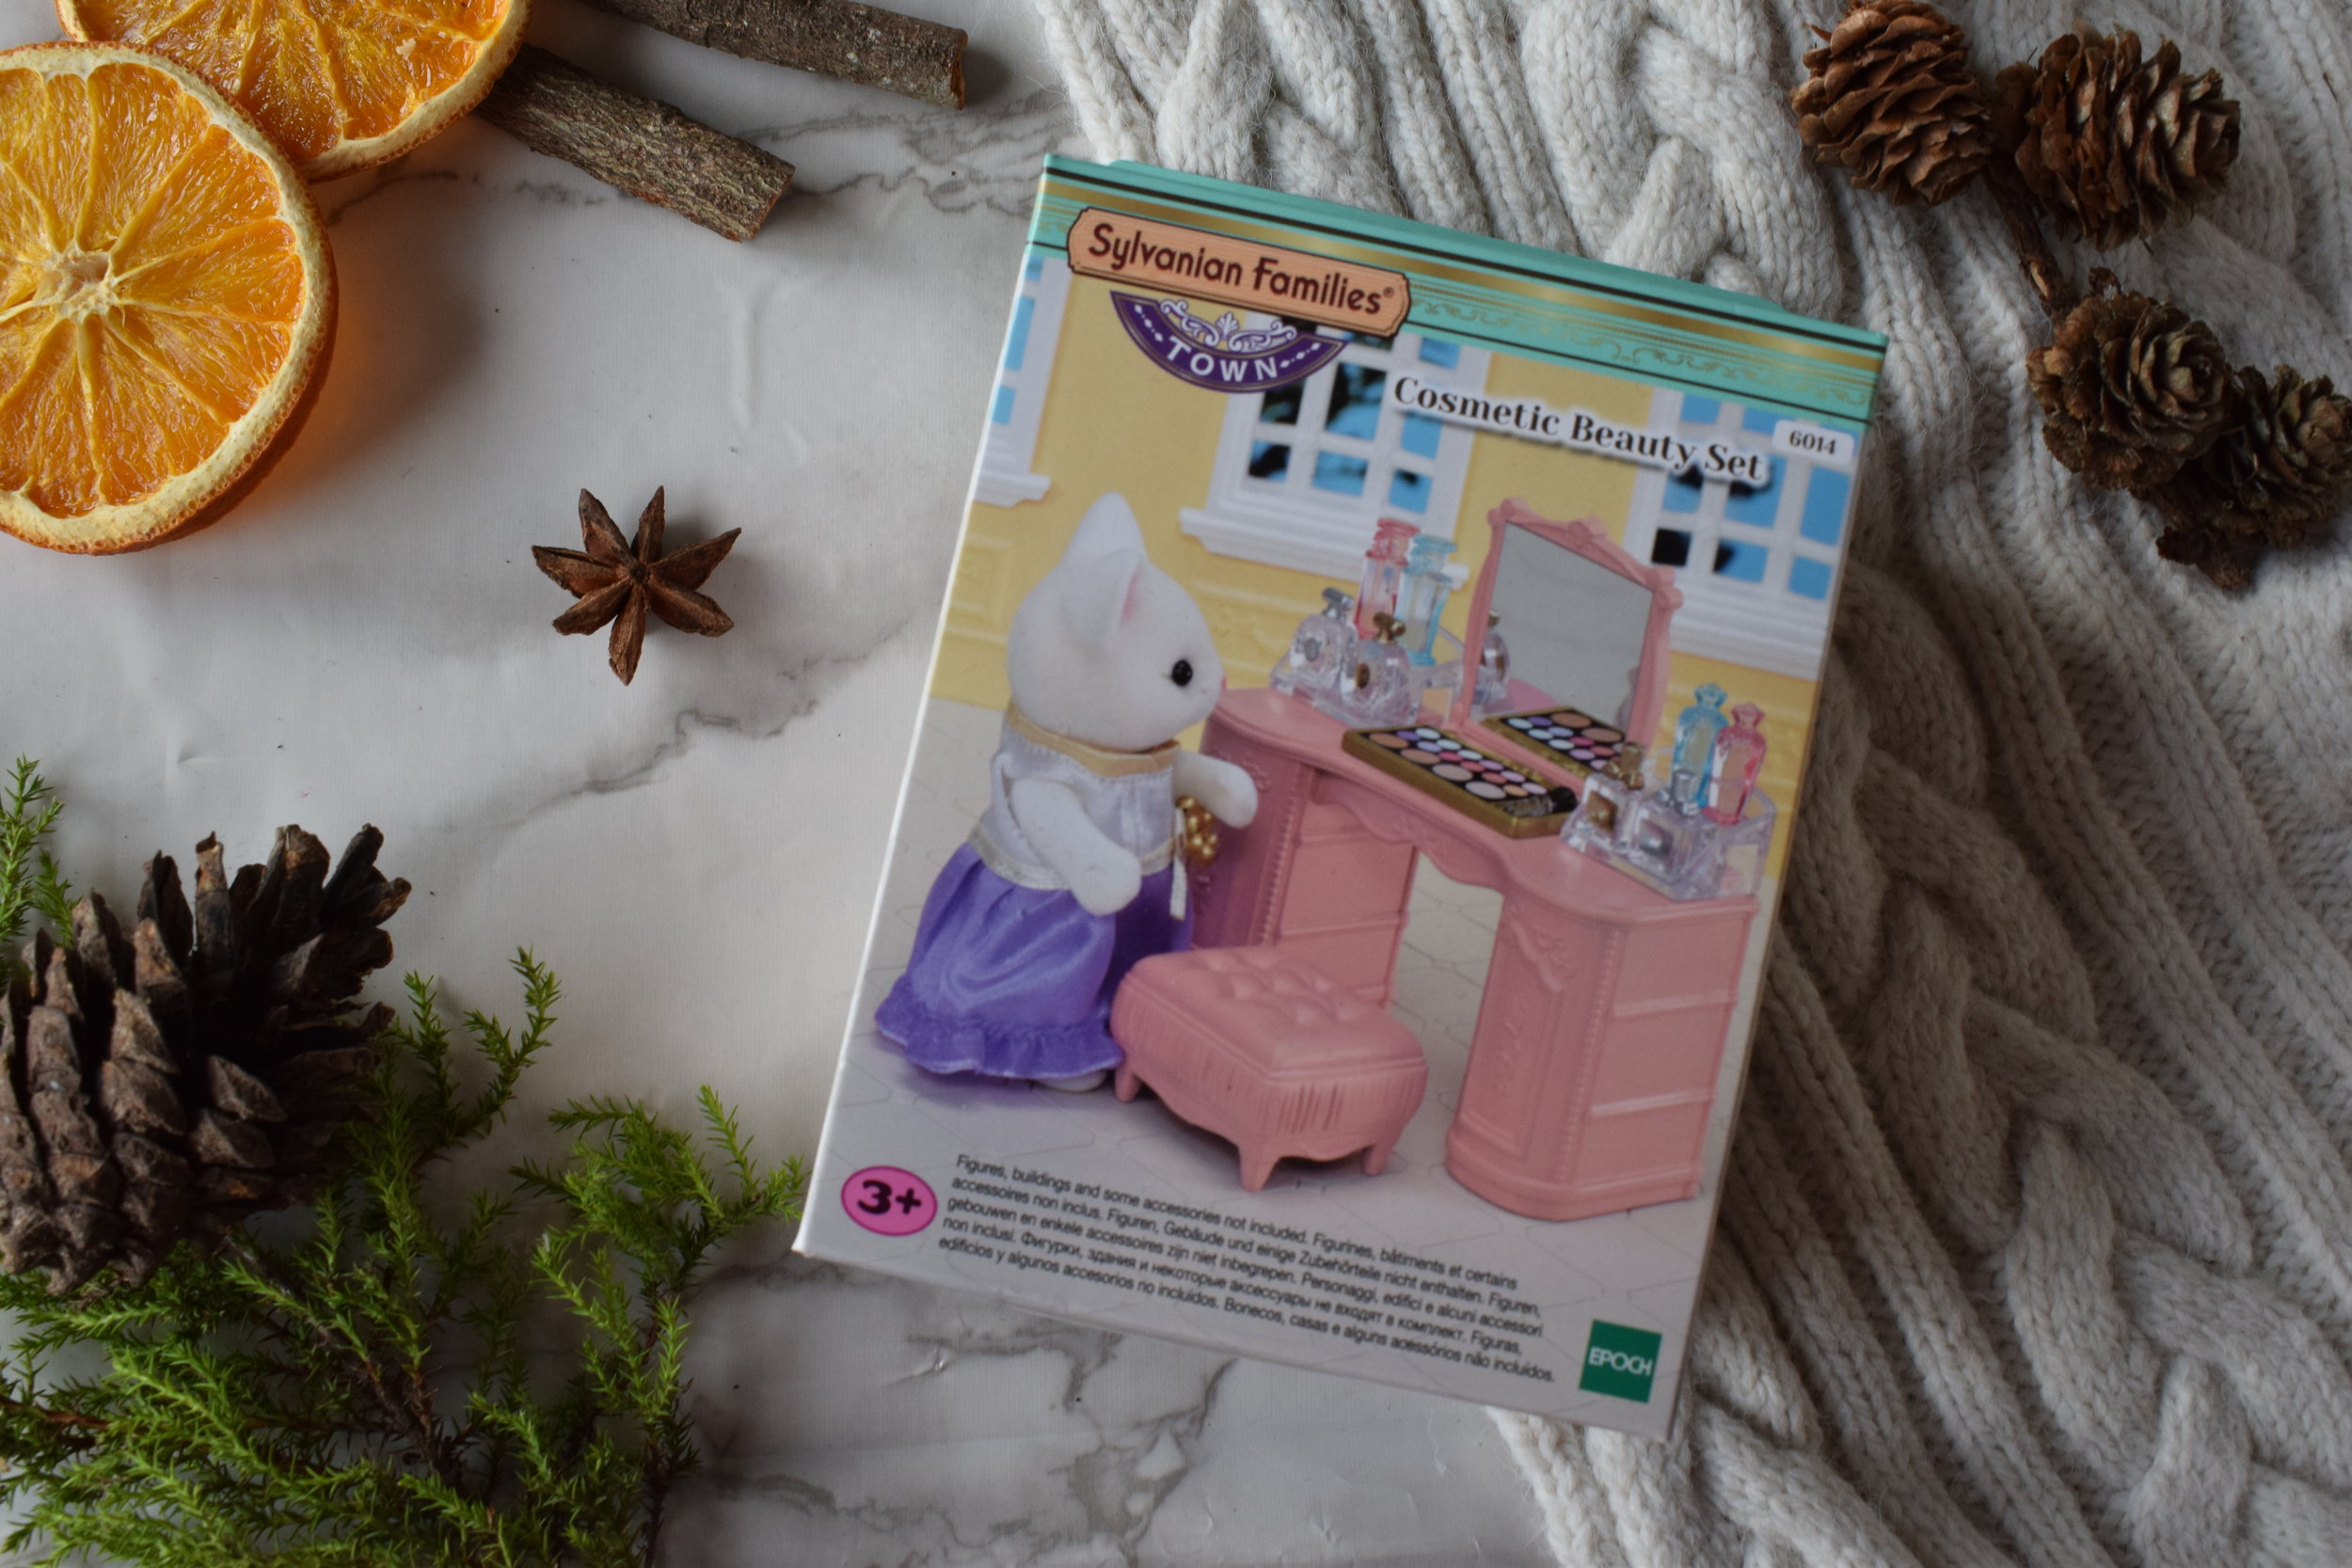 Sylvanian Families Cosmetic Beauty Set Me Becoming Mum's Stocking Fillers for Under 5s